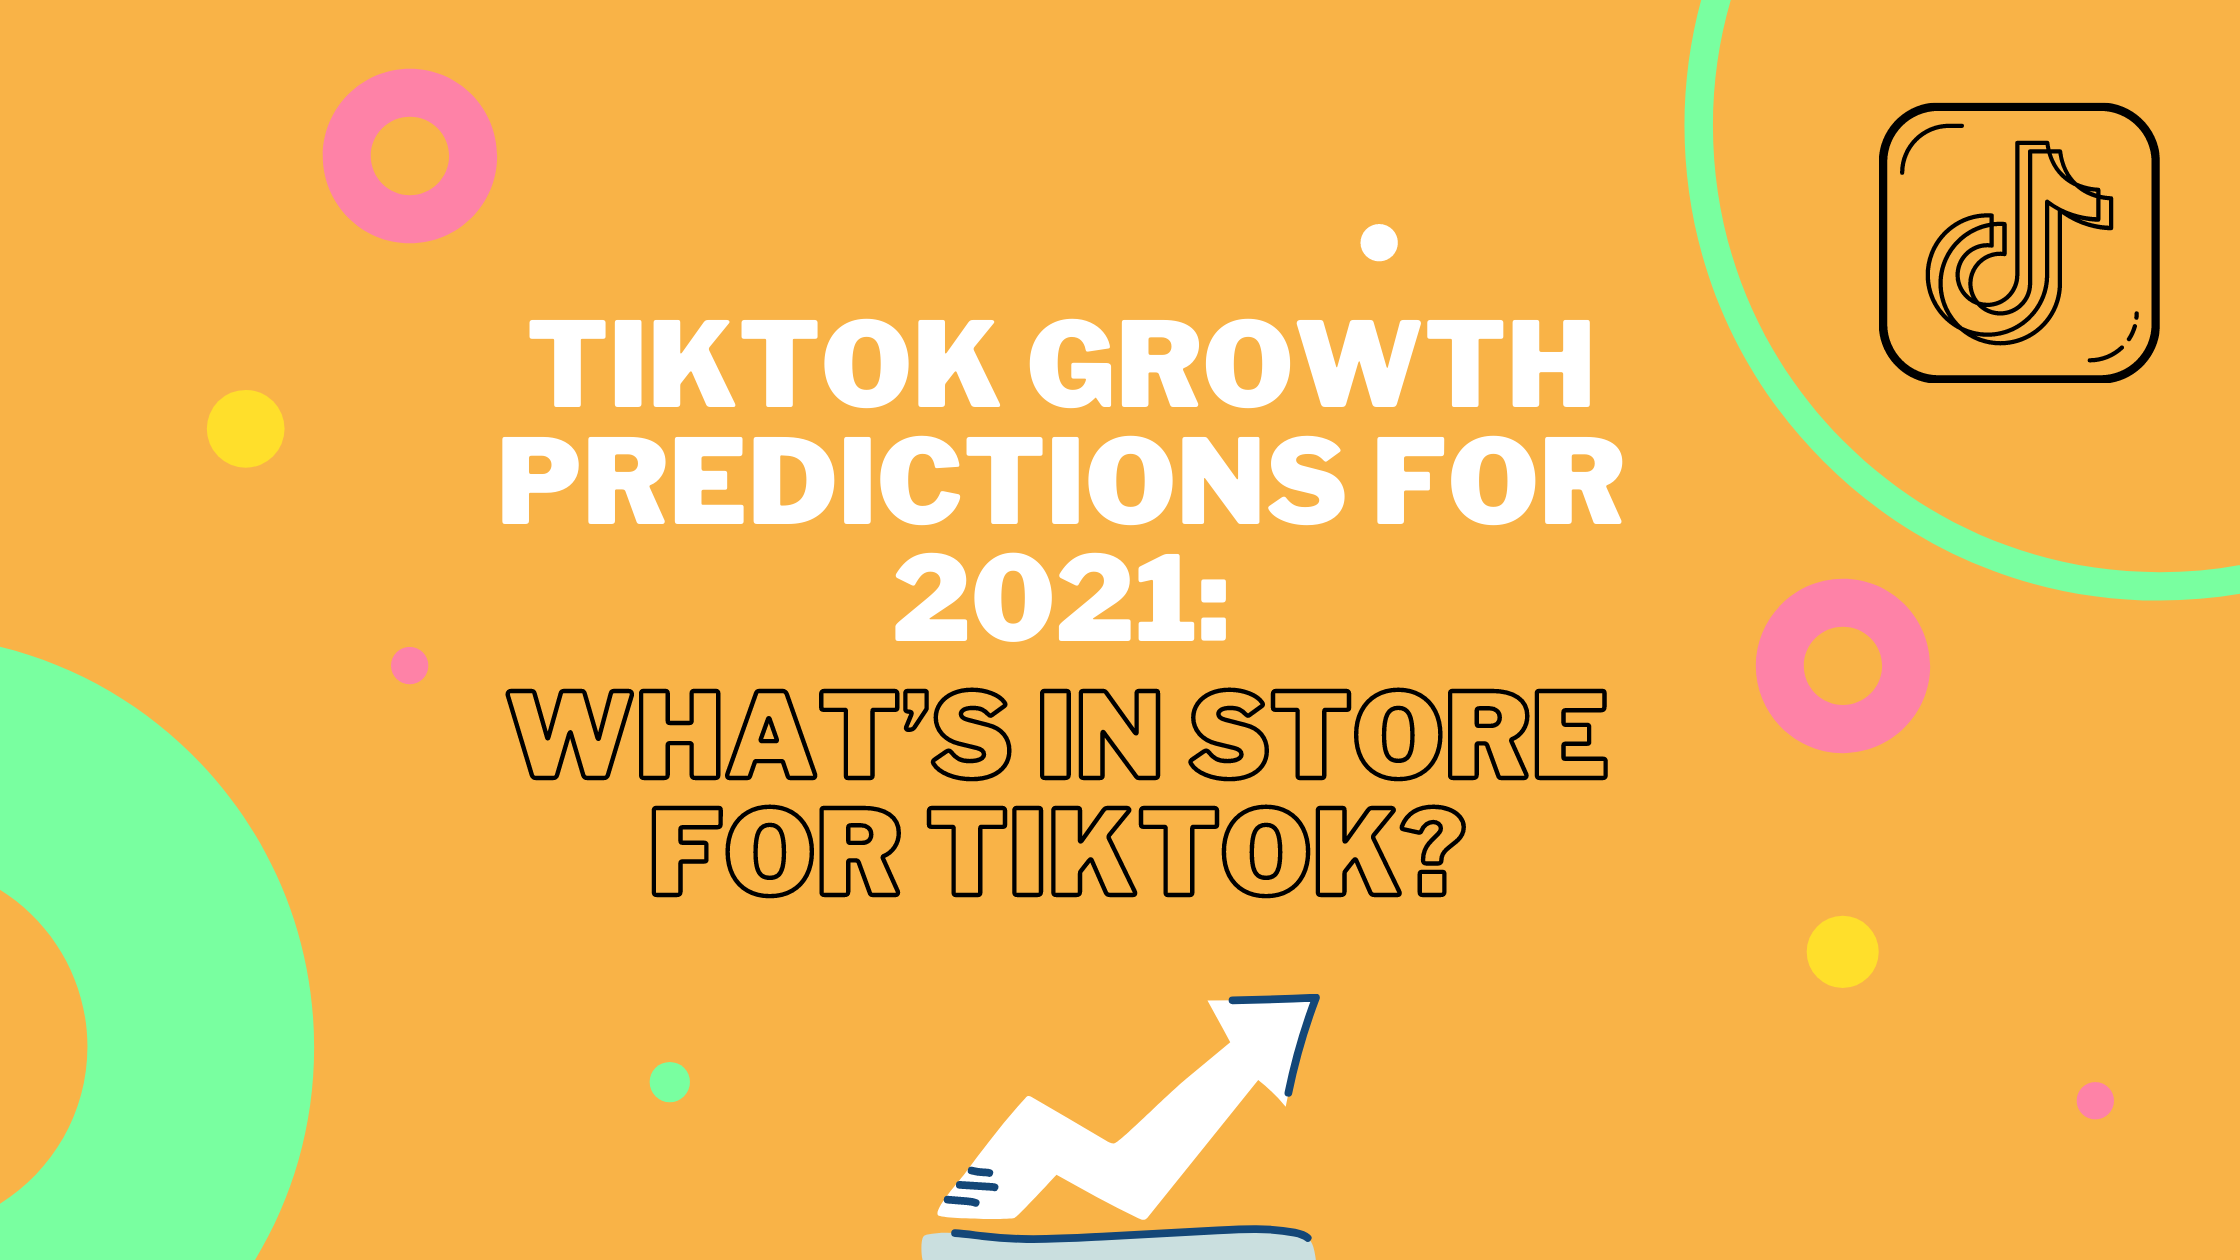 TikTok Growth Predictions For 2021: What's In Store For TikTok?